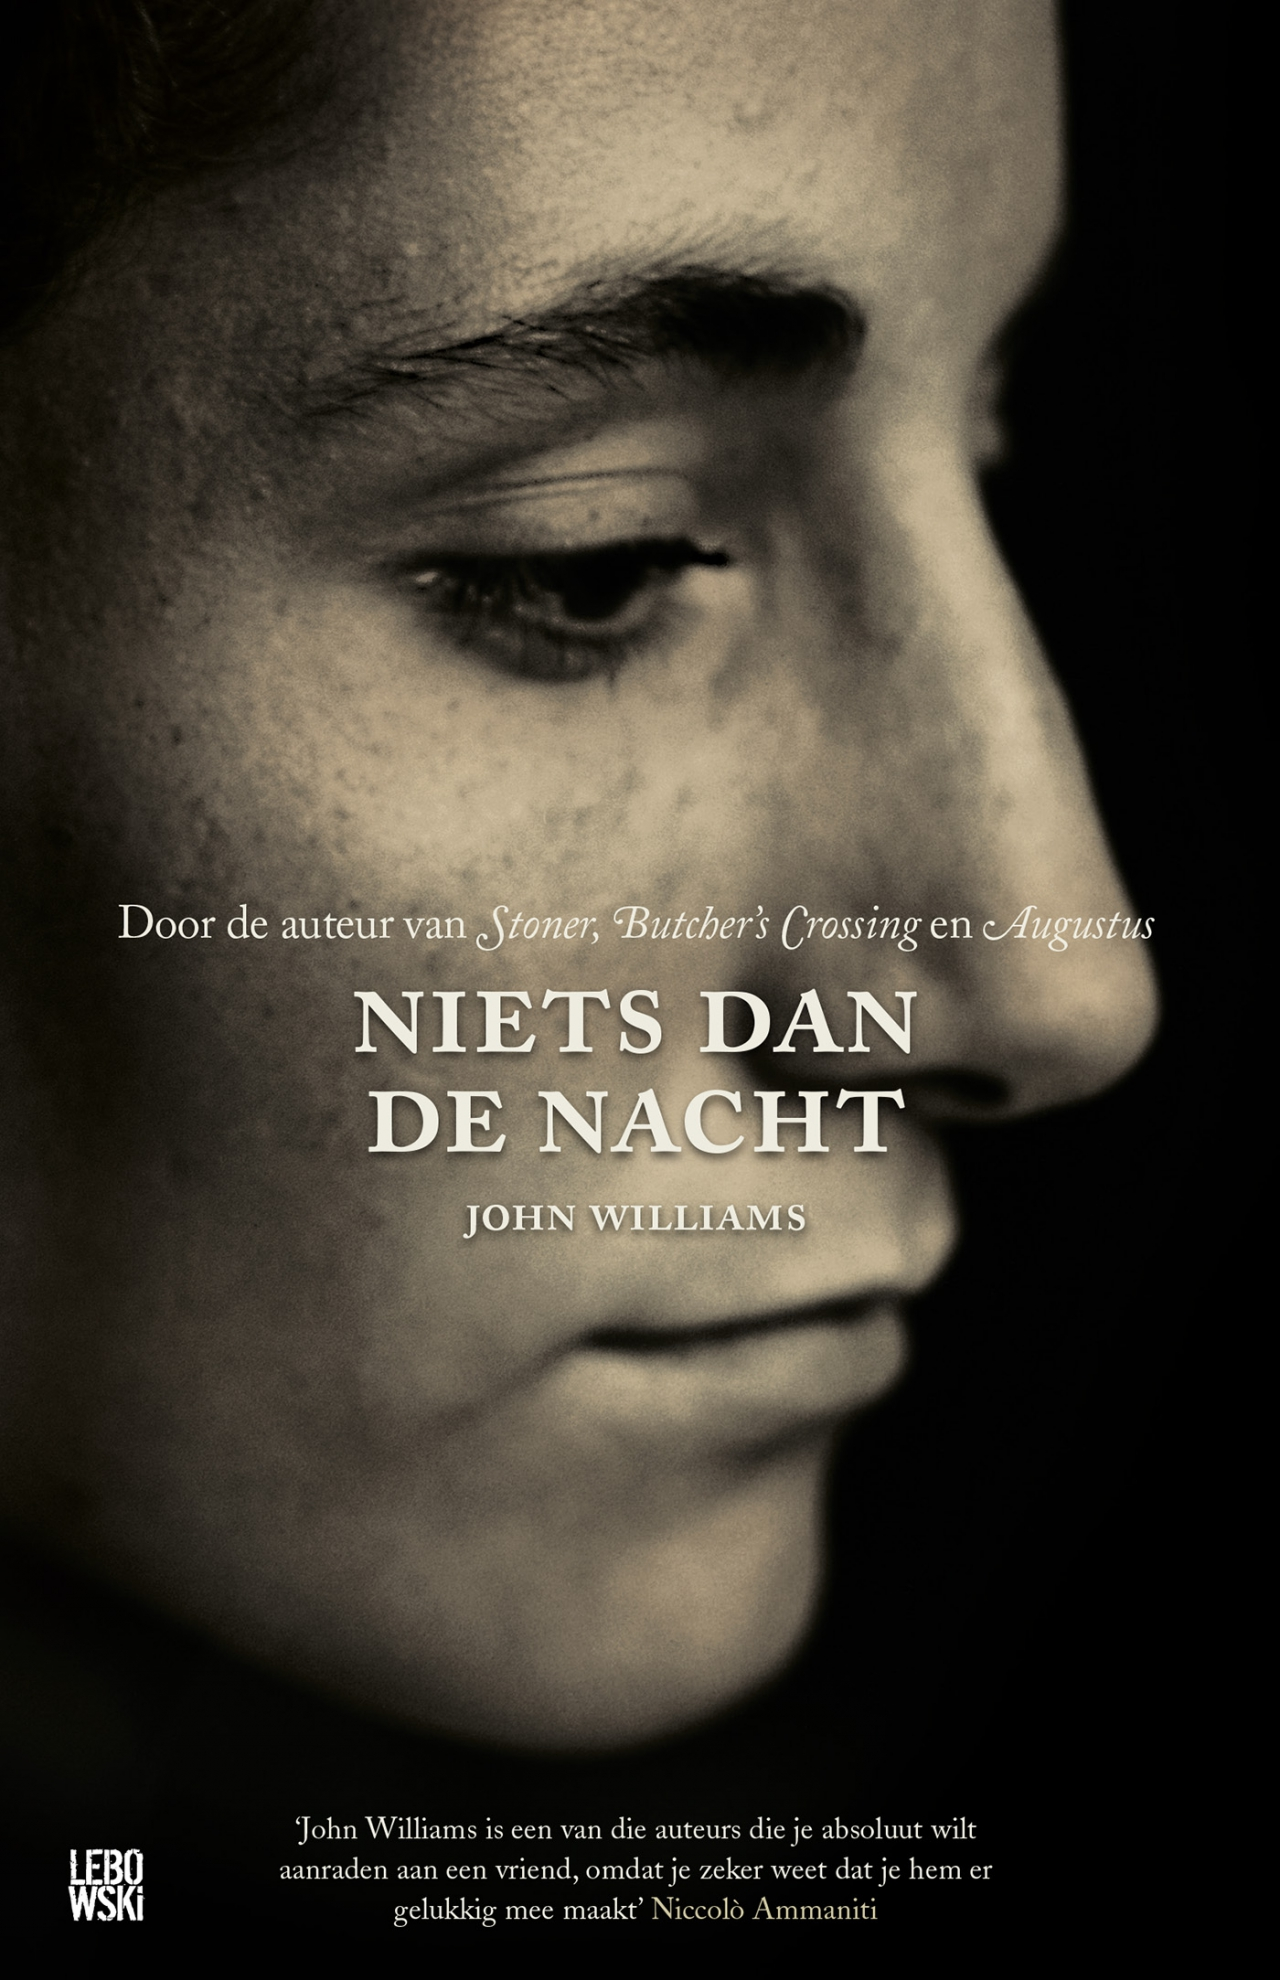 Niets dan de nacht – John Williams